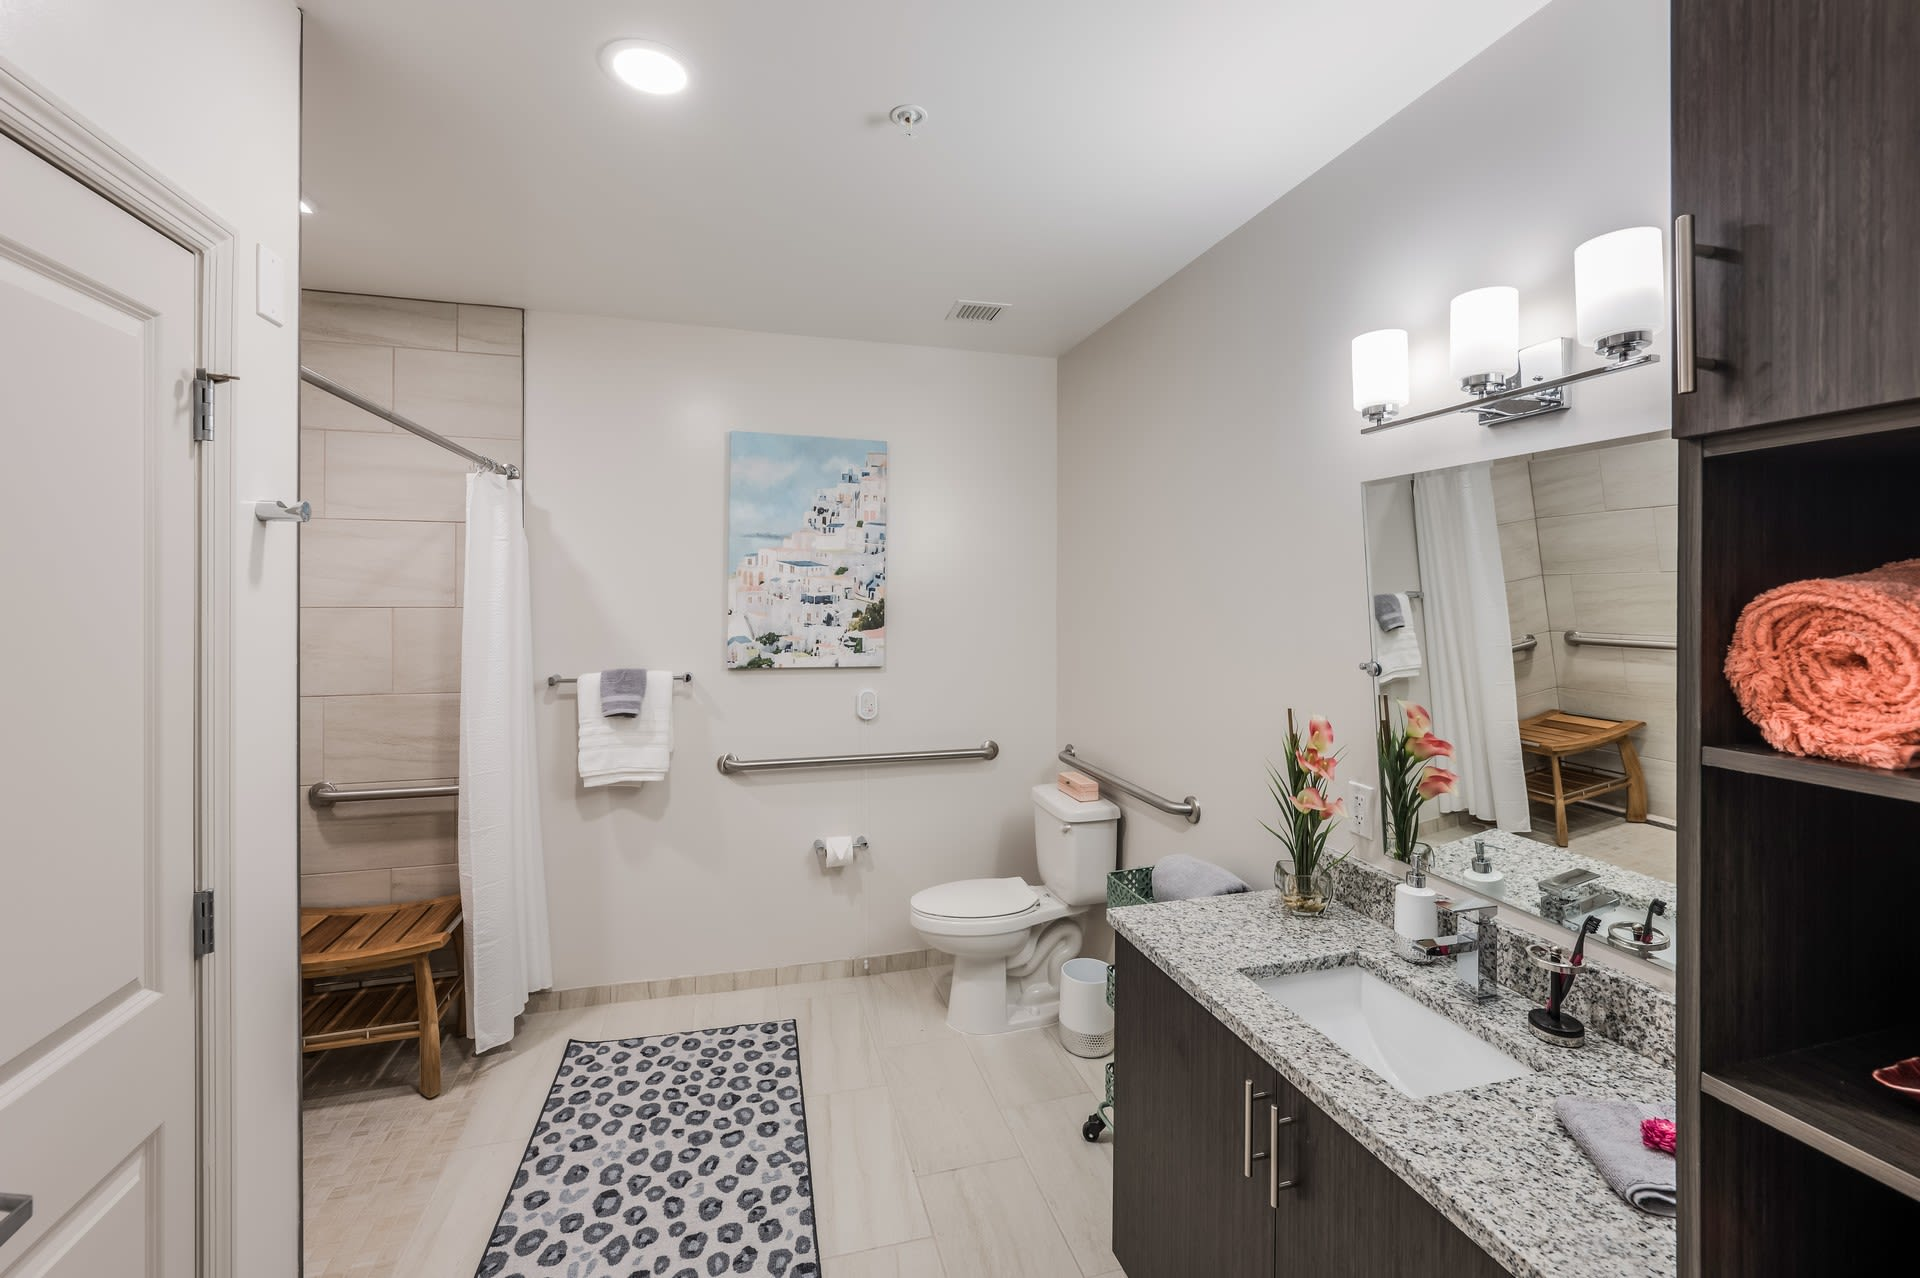 Enjoy a spacious bathroom at Alura By Inspired Living in Rockledge, Florida